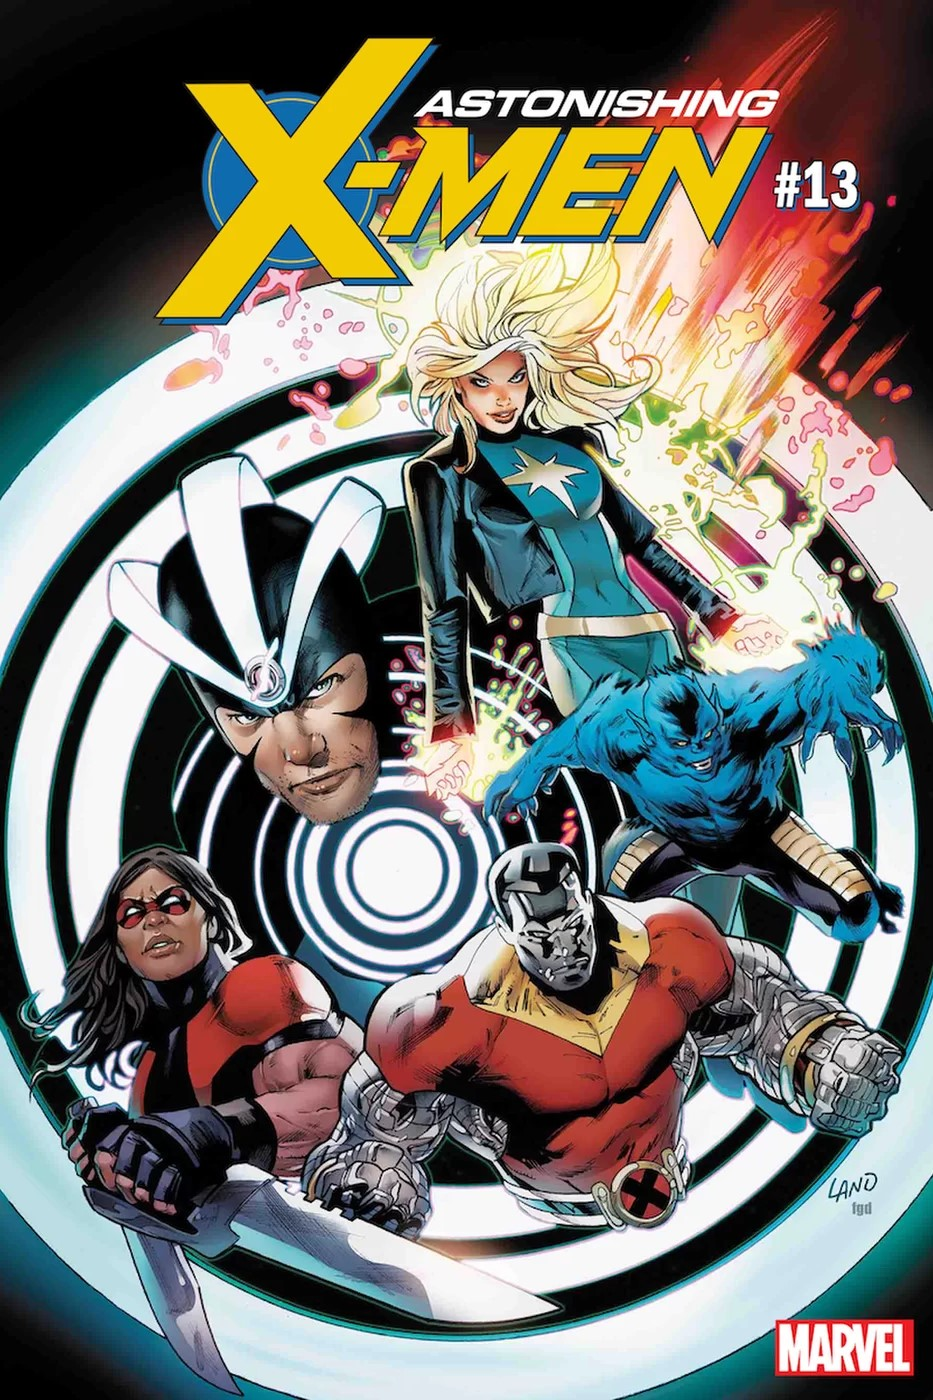 Astonishing-X-Men-1